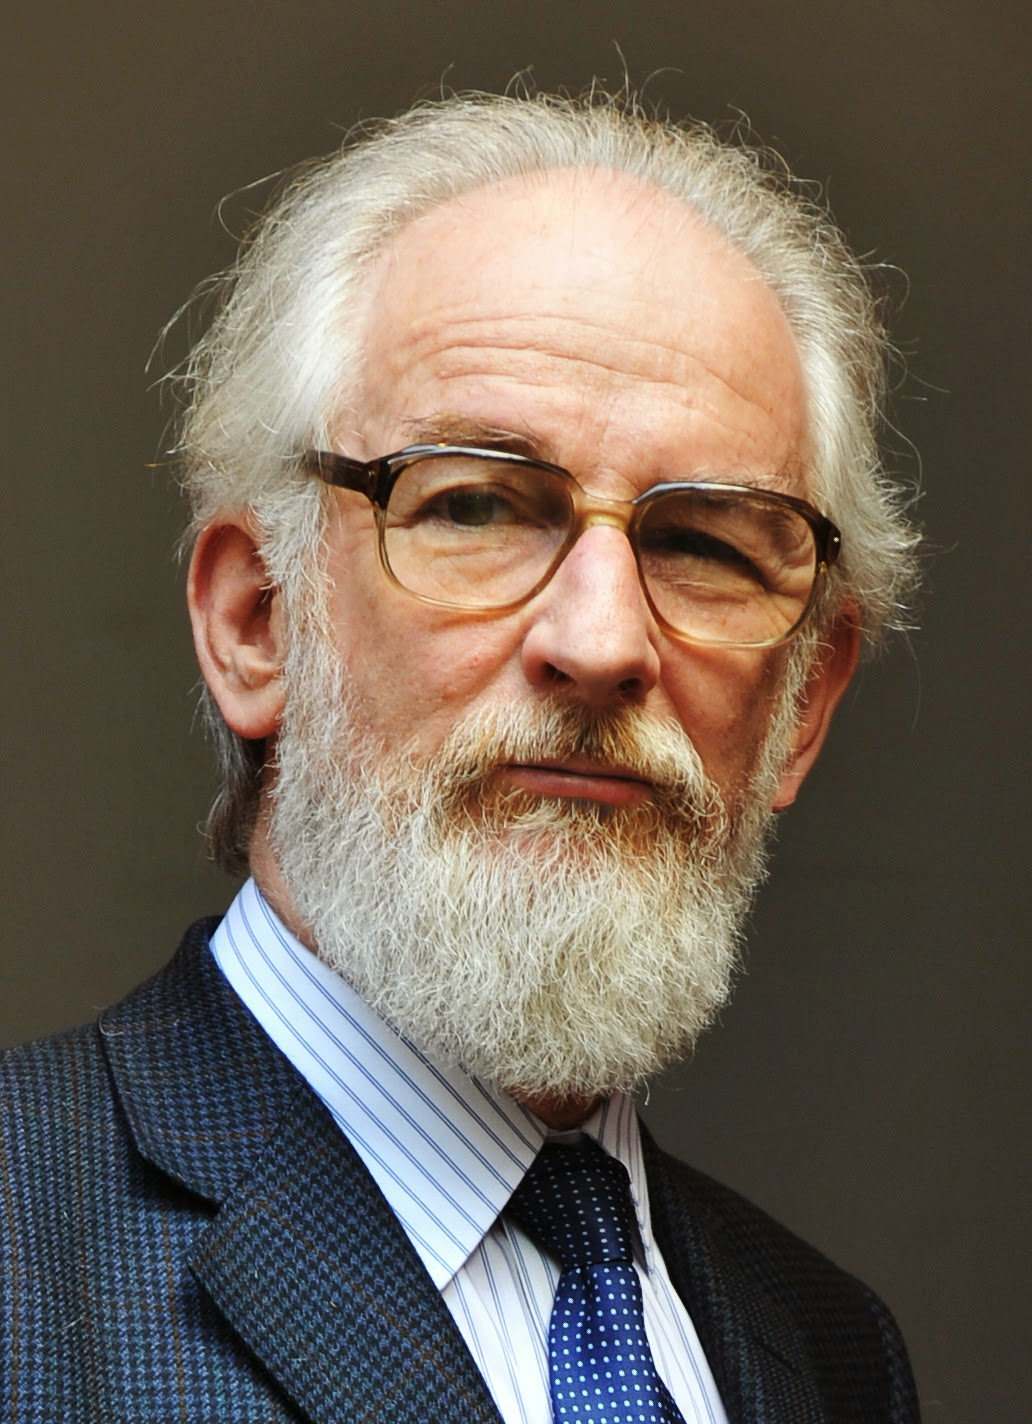 david crystal why a global language In this video professor david crystal talks about how english has become the dominant global language.